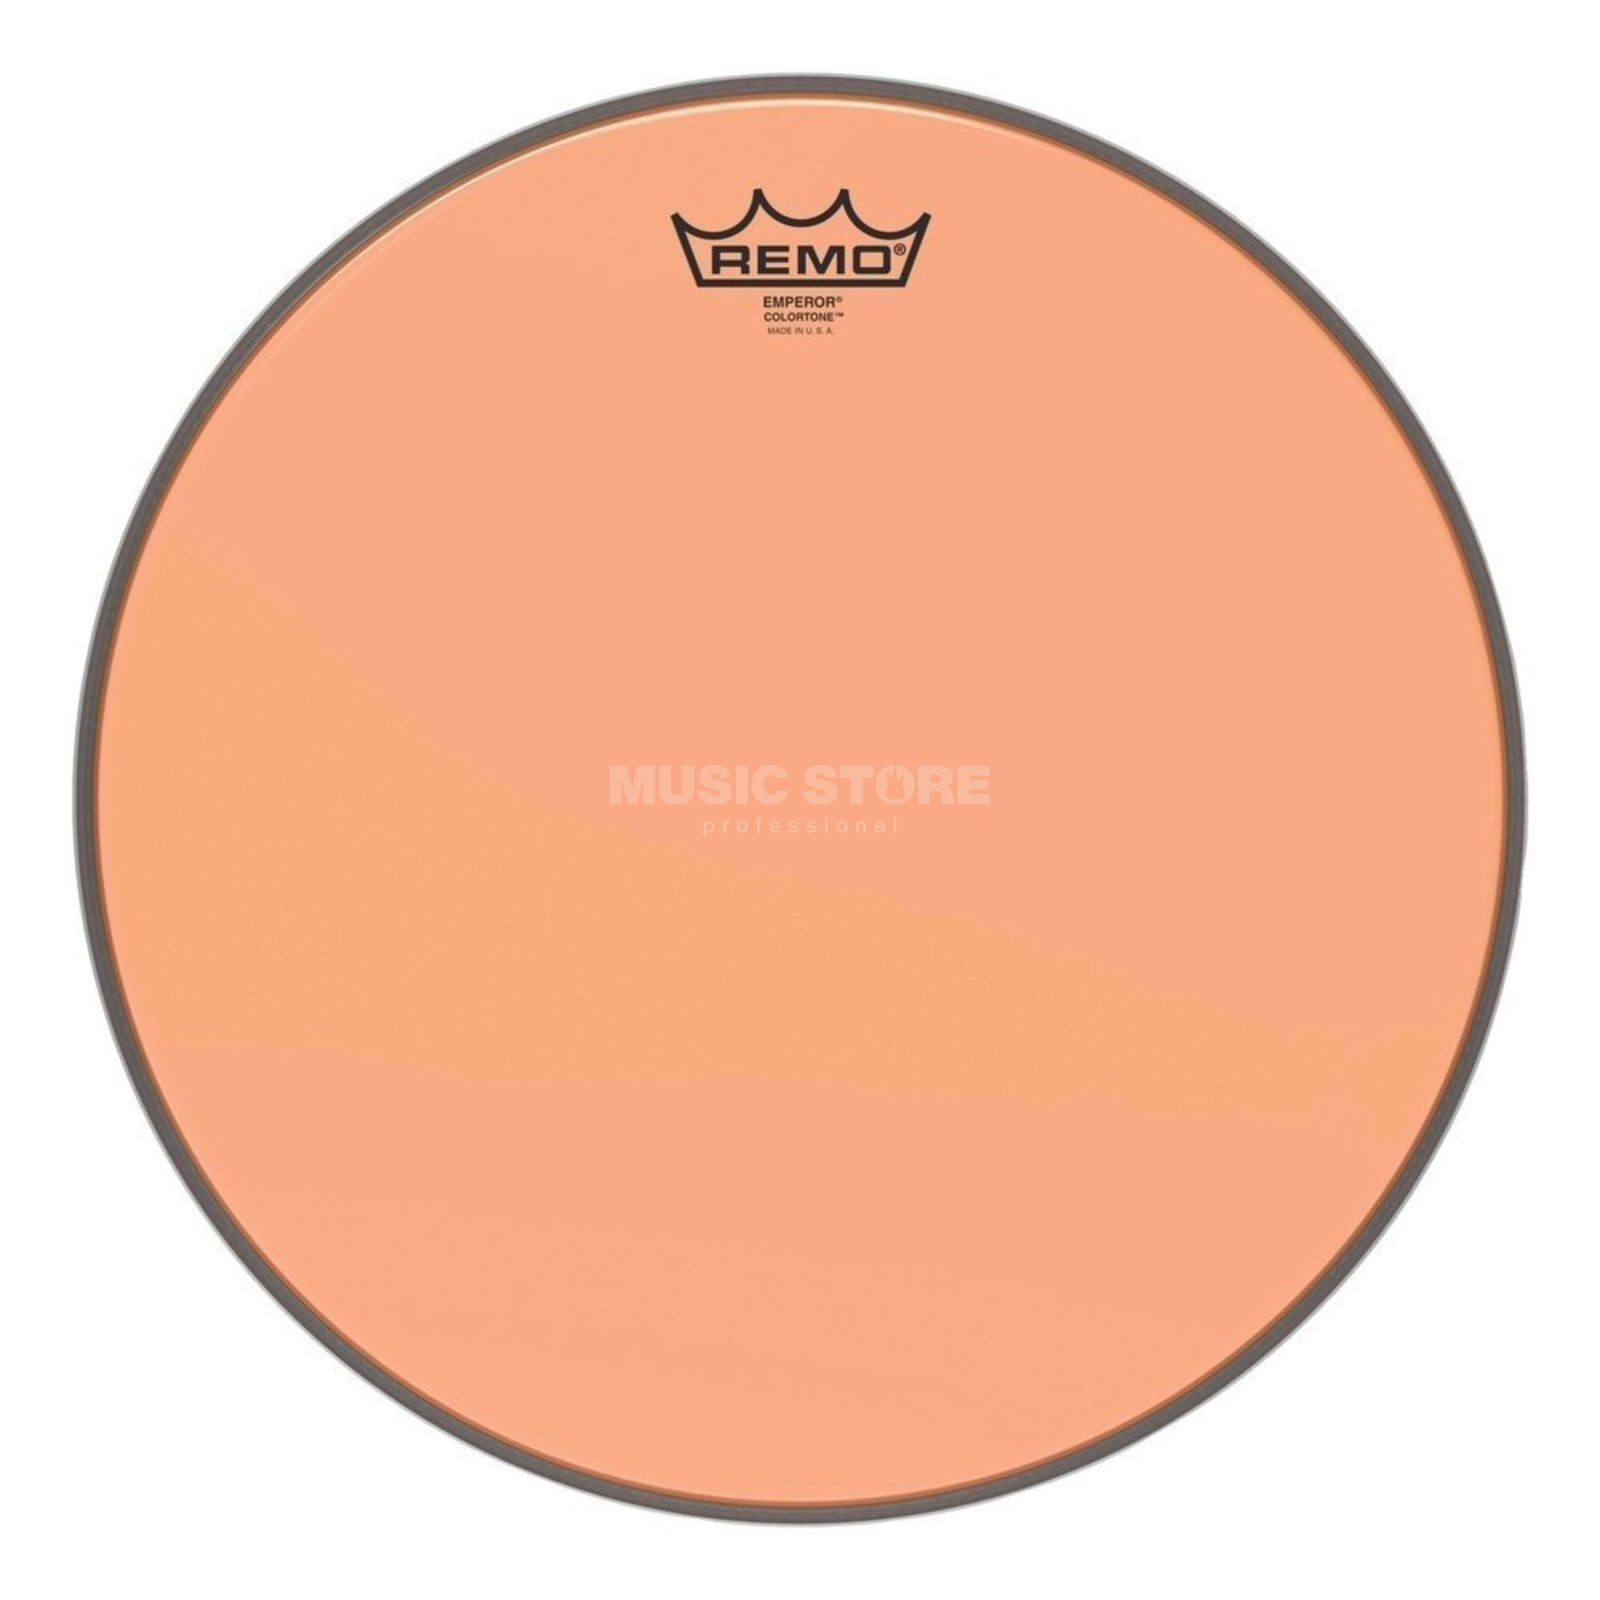 "Remo Emperor Colortone Orange 14"" Product Image"